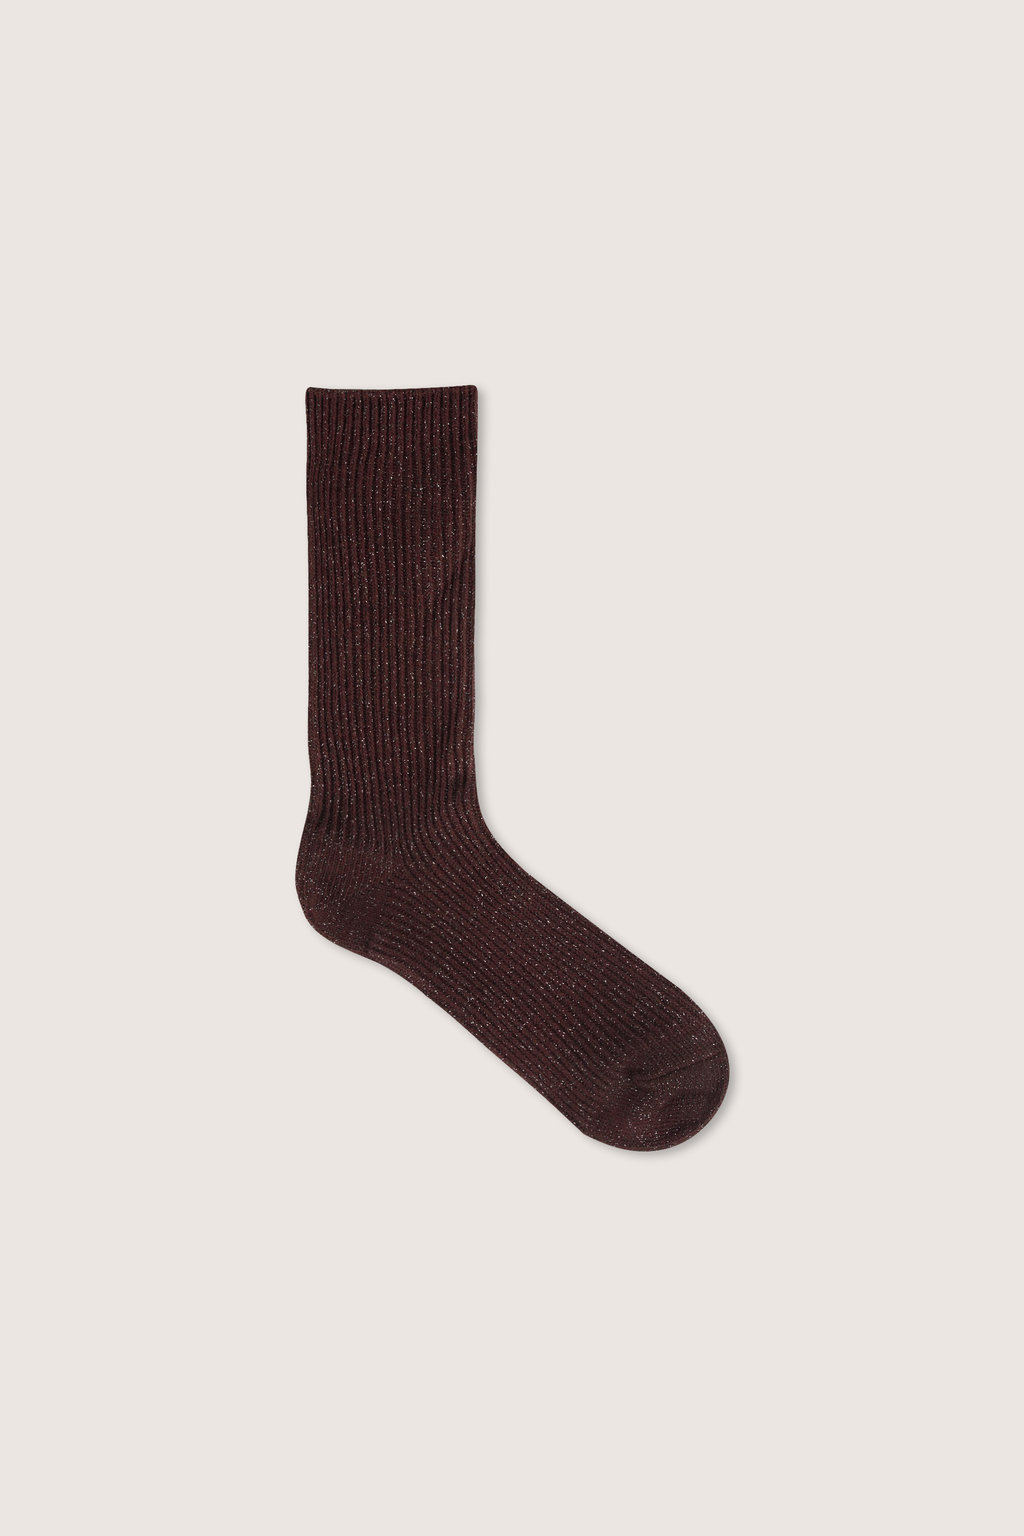 Sock H036 Brown 3